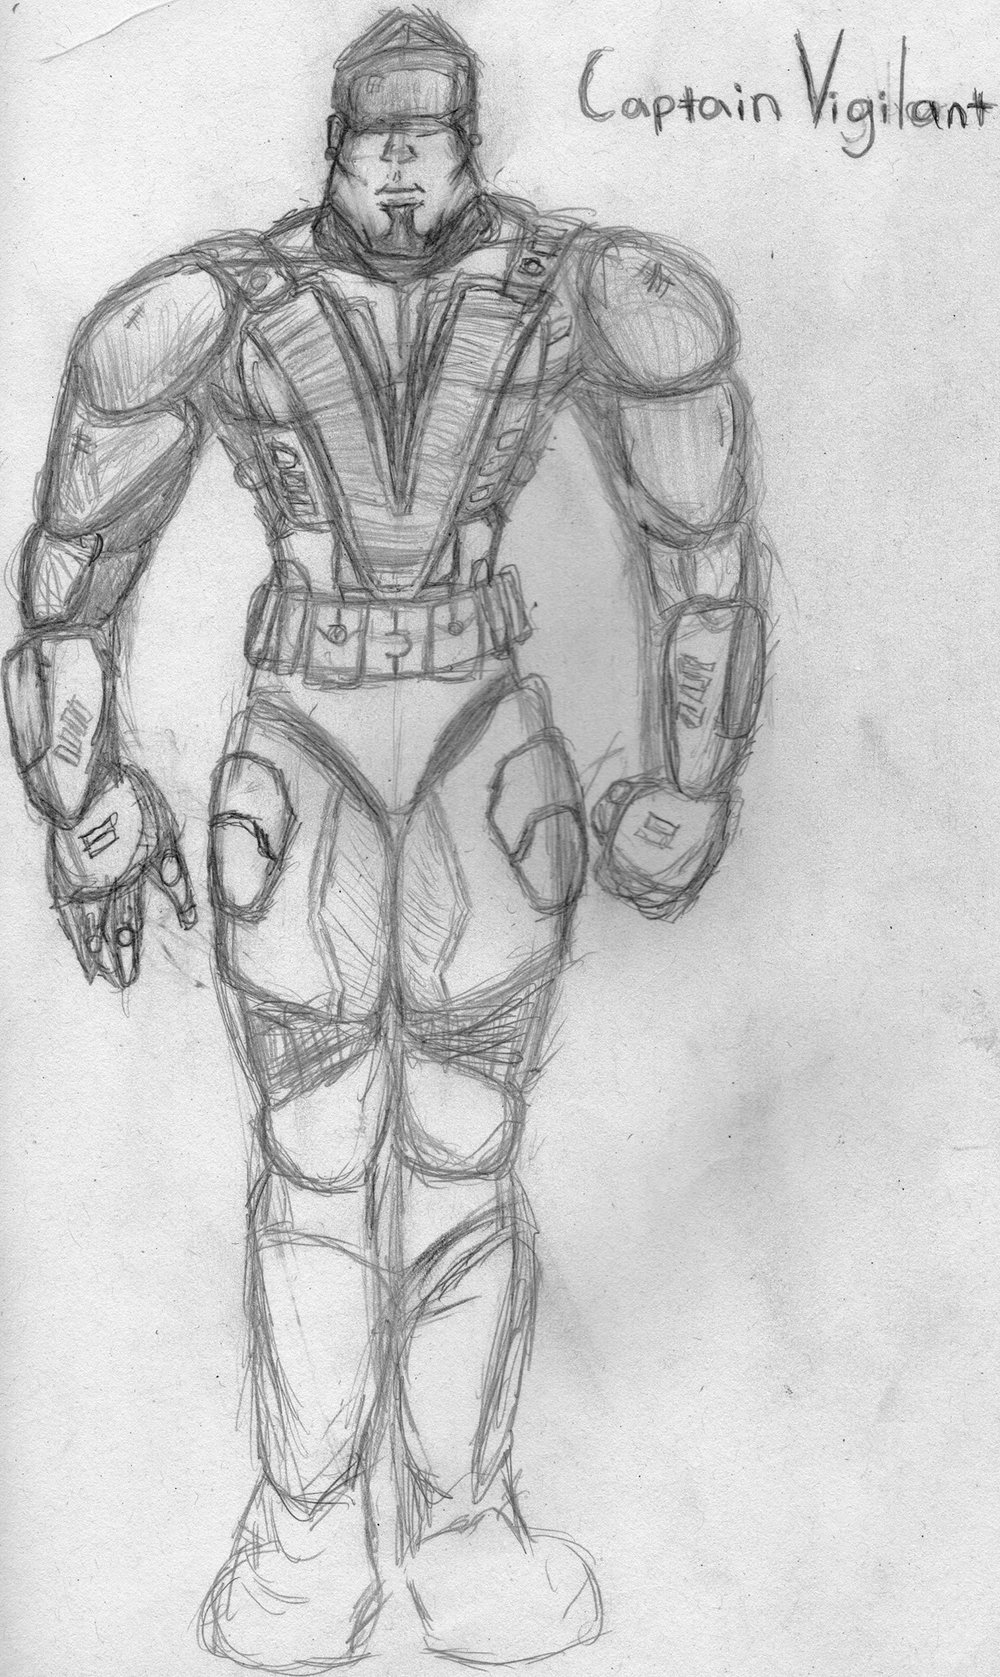 Costume Design for Capt. Vigilant - The results were crafted by Arianna Ward